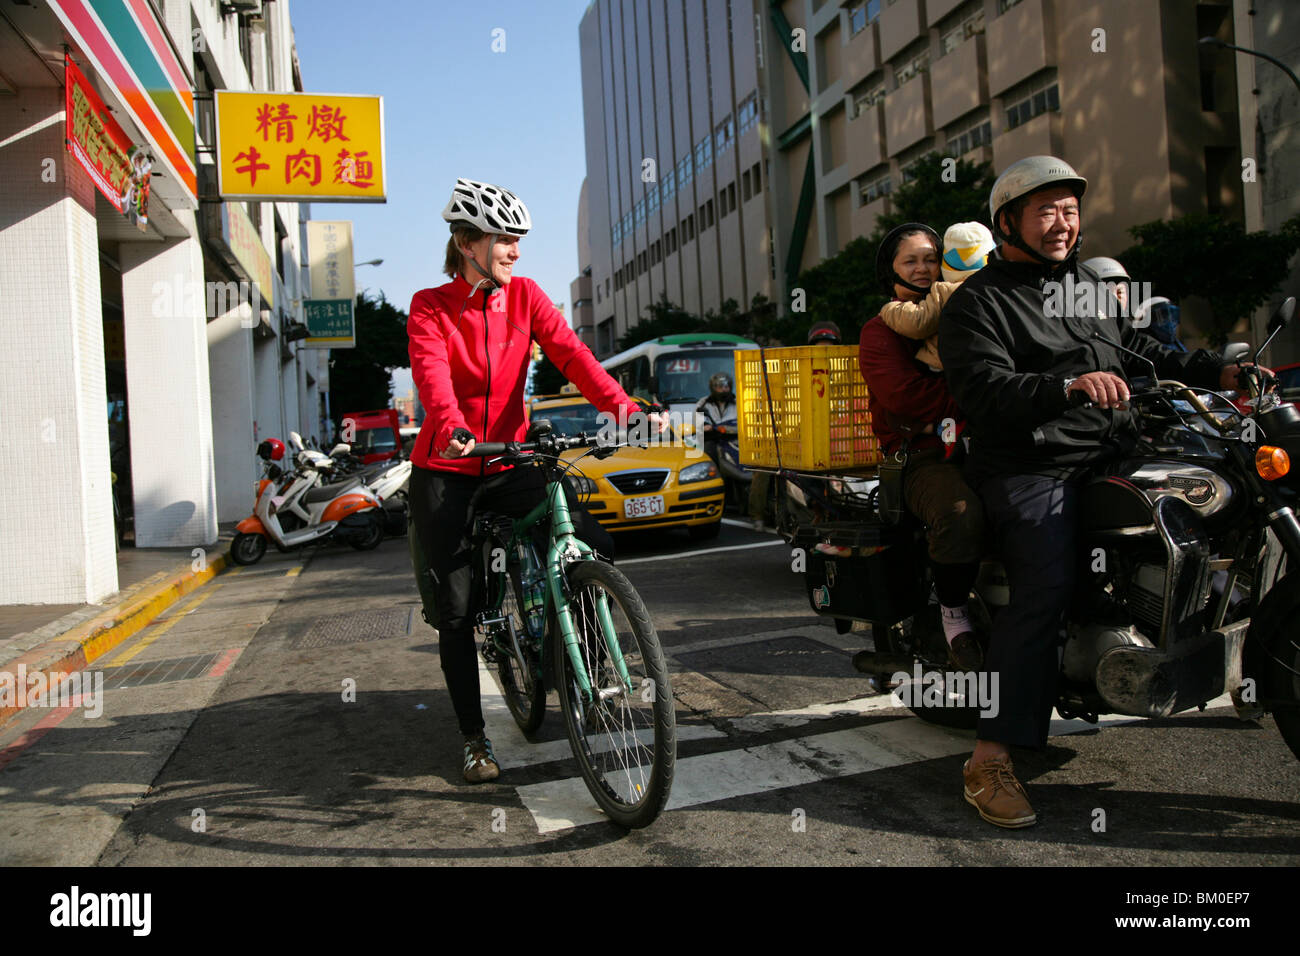 Young German woman on bicycle and family on motorbike, Taipei, Republic of China, Taiwan, Asia - Stock Image